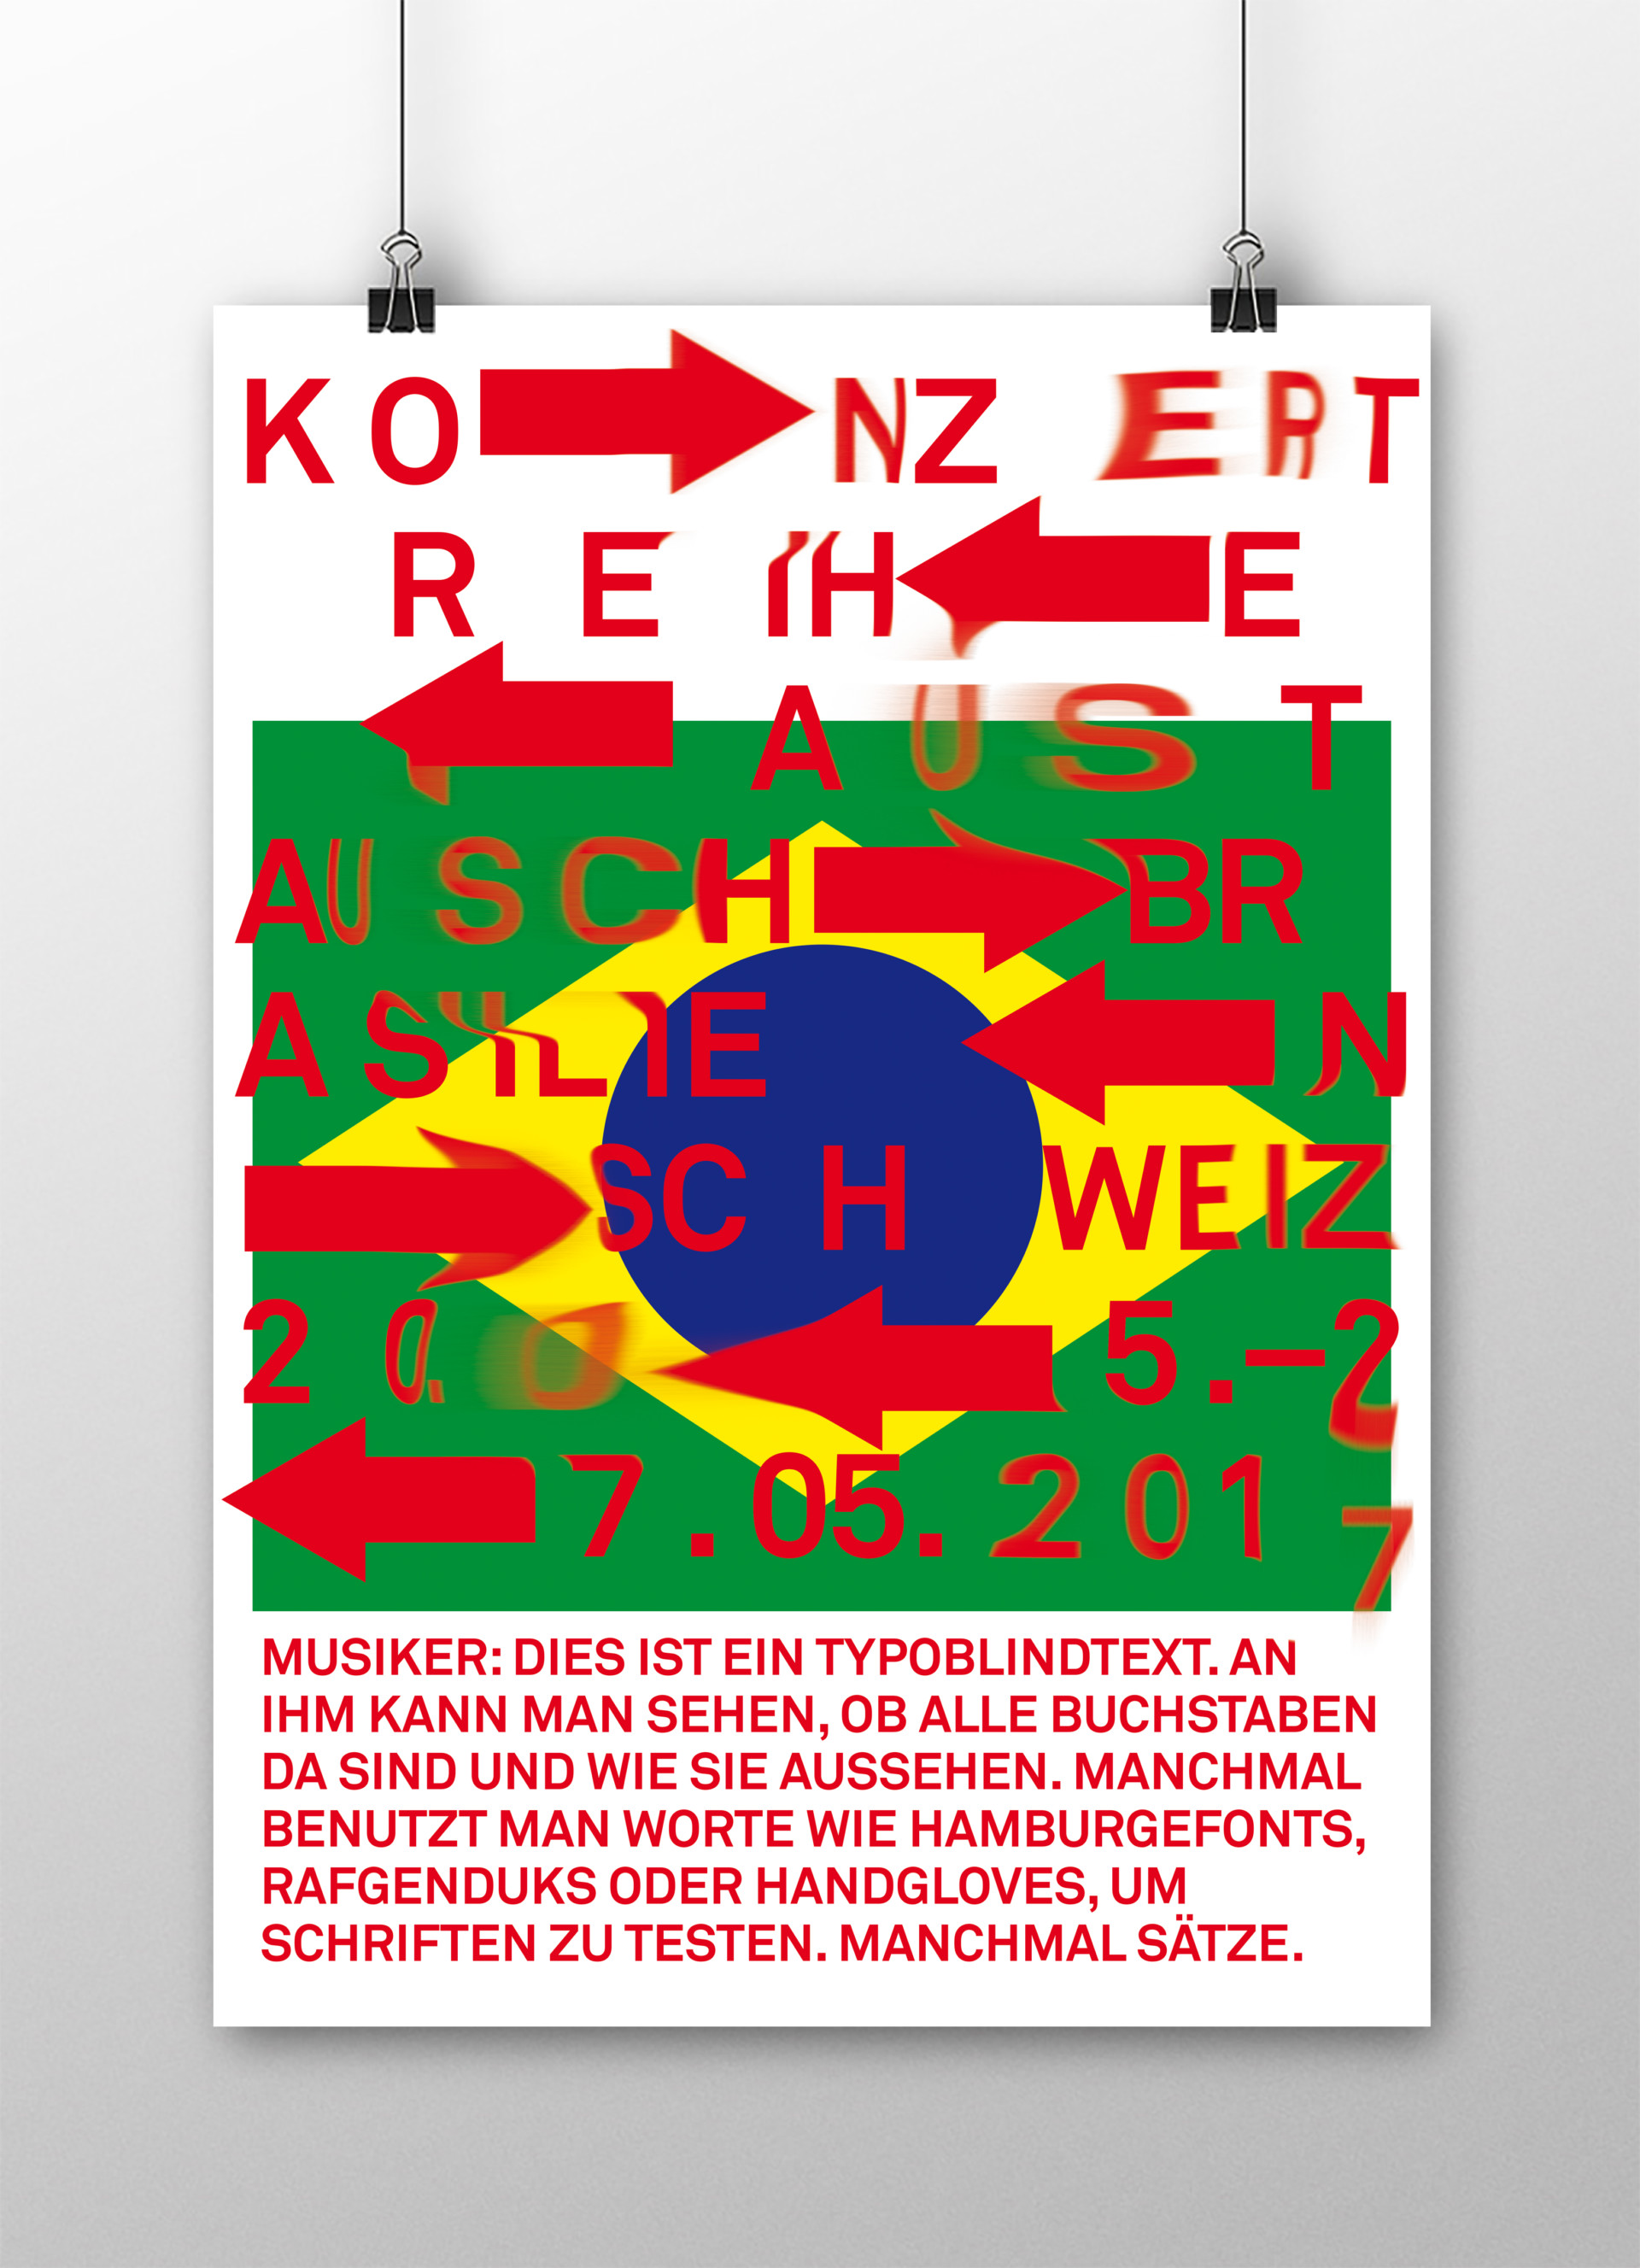 visual communication alessia pennetta konzertaustausch – poster design